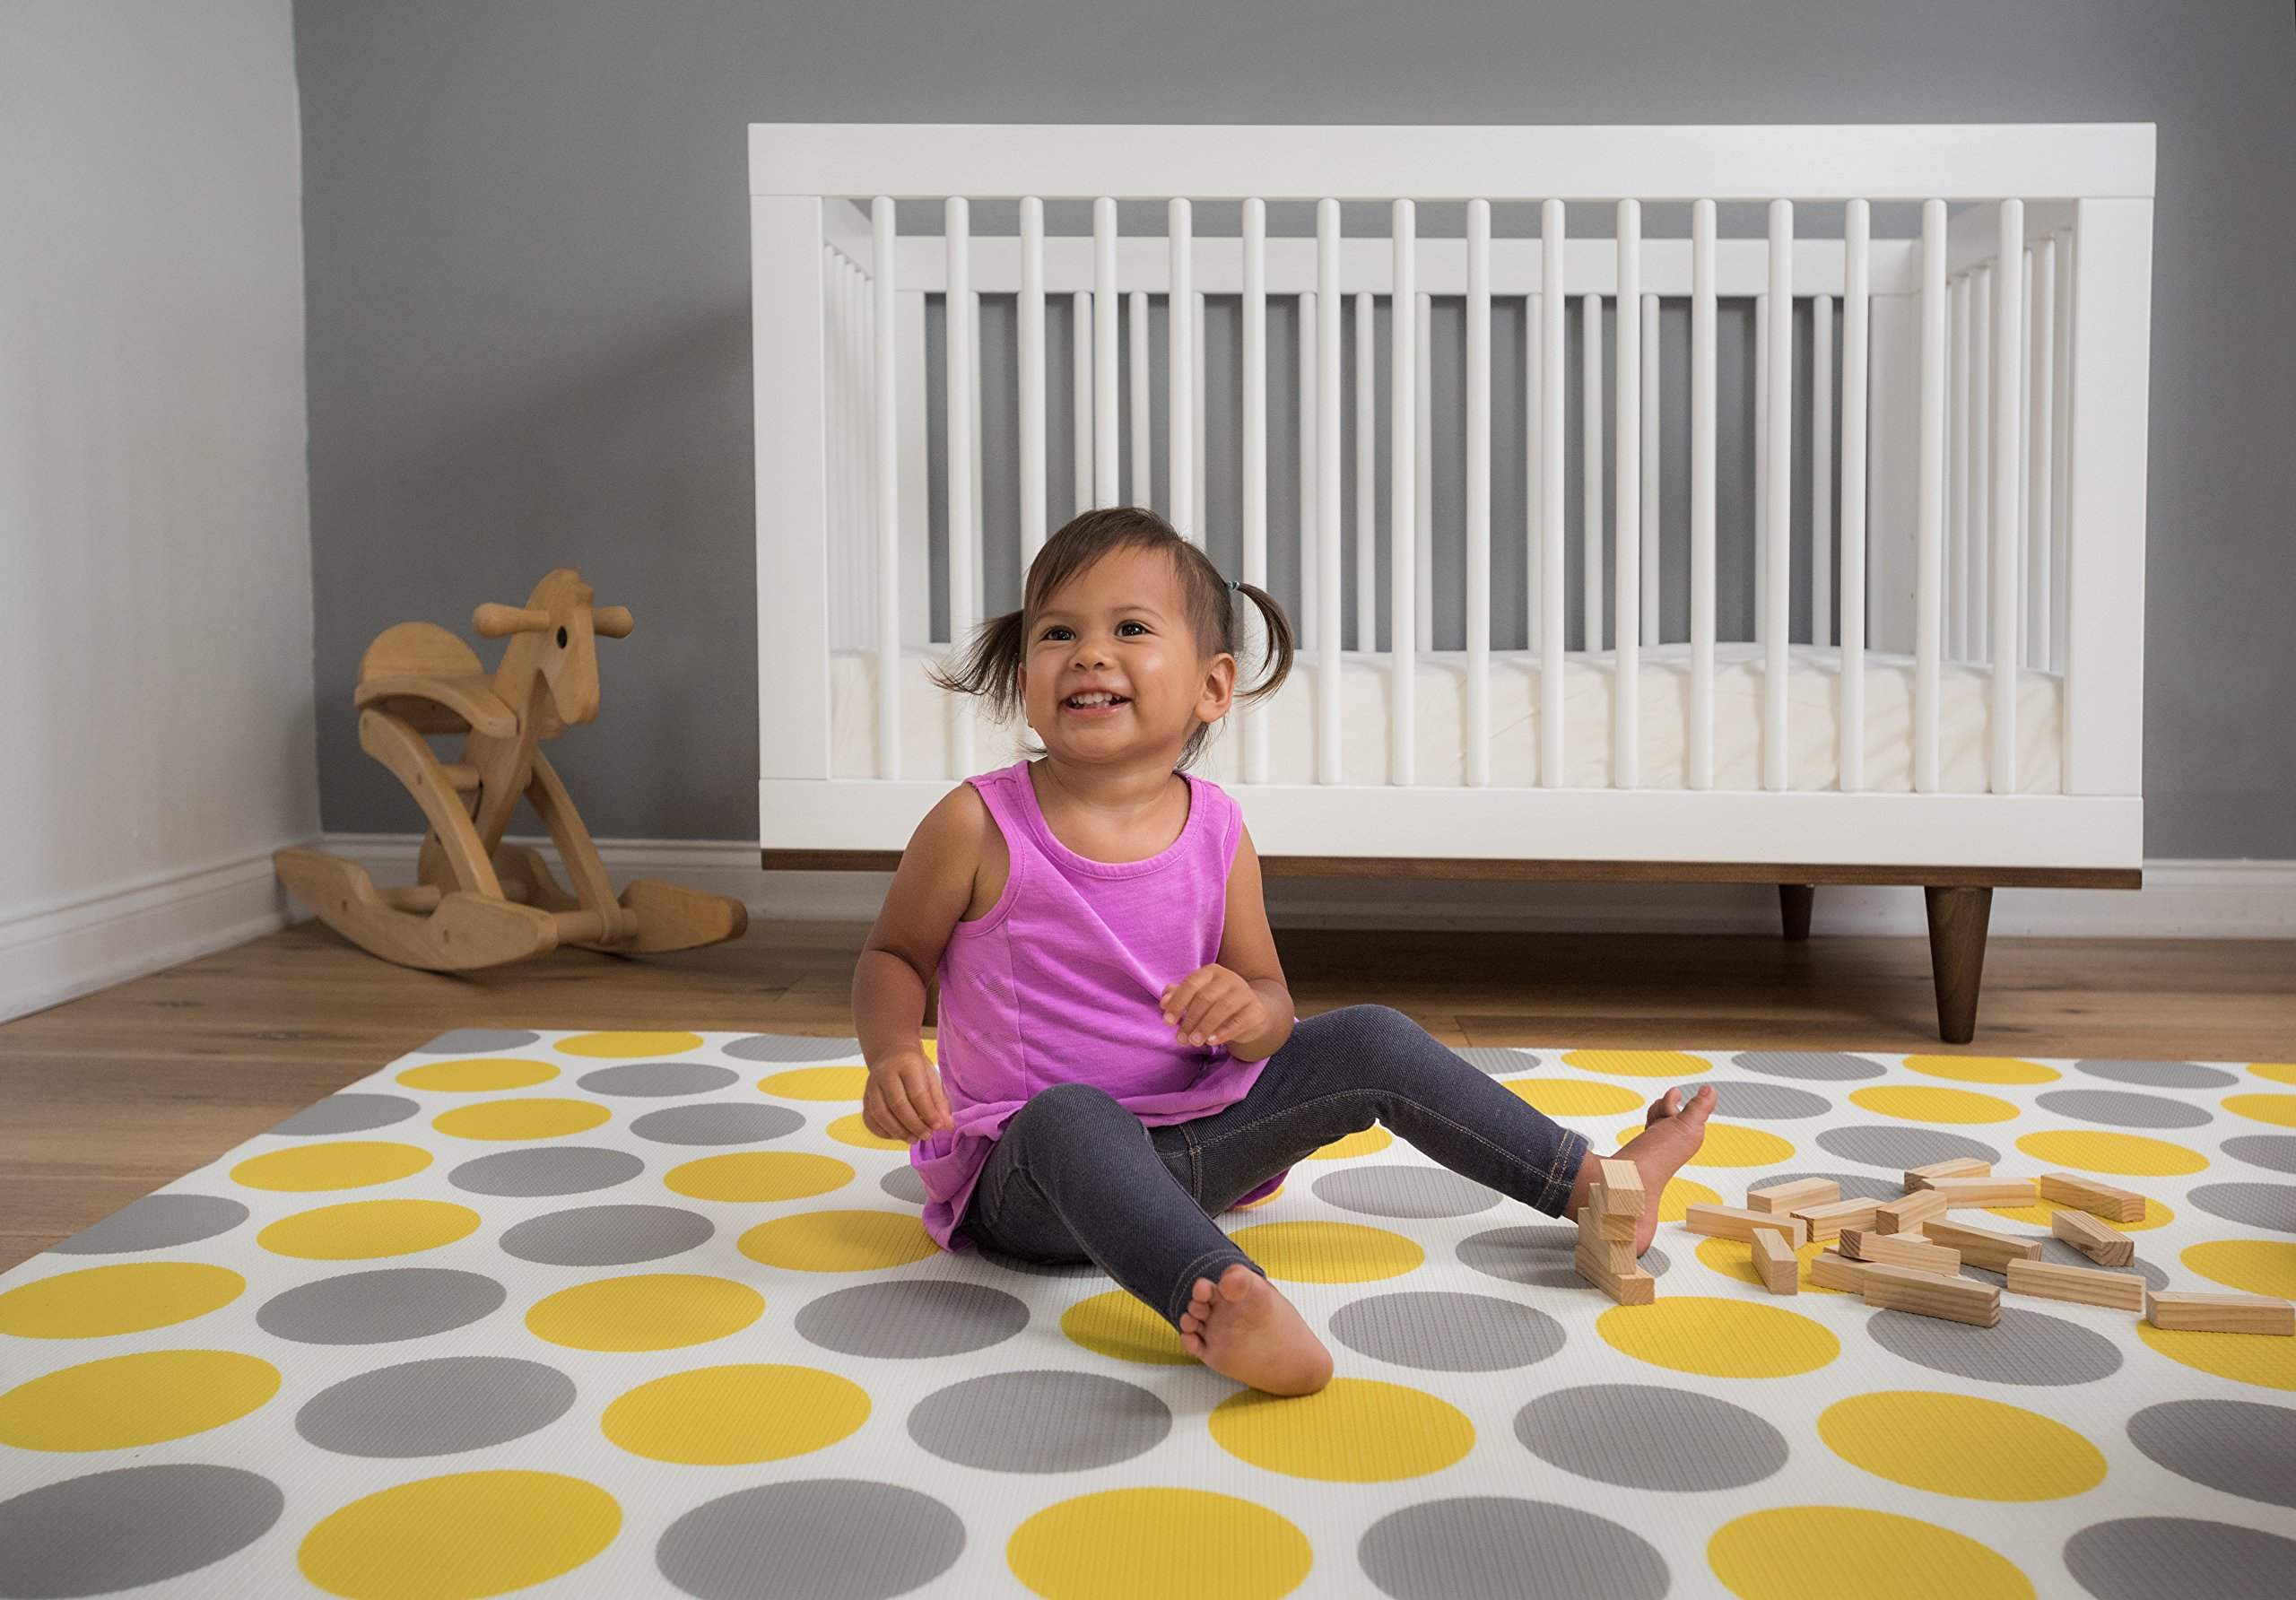 Baby Play Mat – For Babies, Toddlers and Kids – Protect Your Child With This Stylish Soft Play Rug – Attractive, Modern and Sophisticated Design – Tested to Rigorous Safety Standards